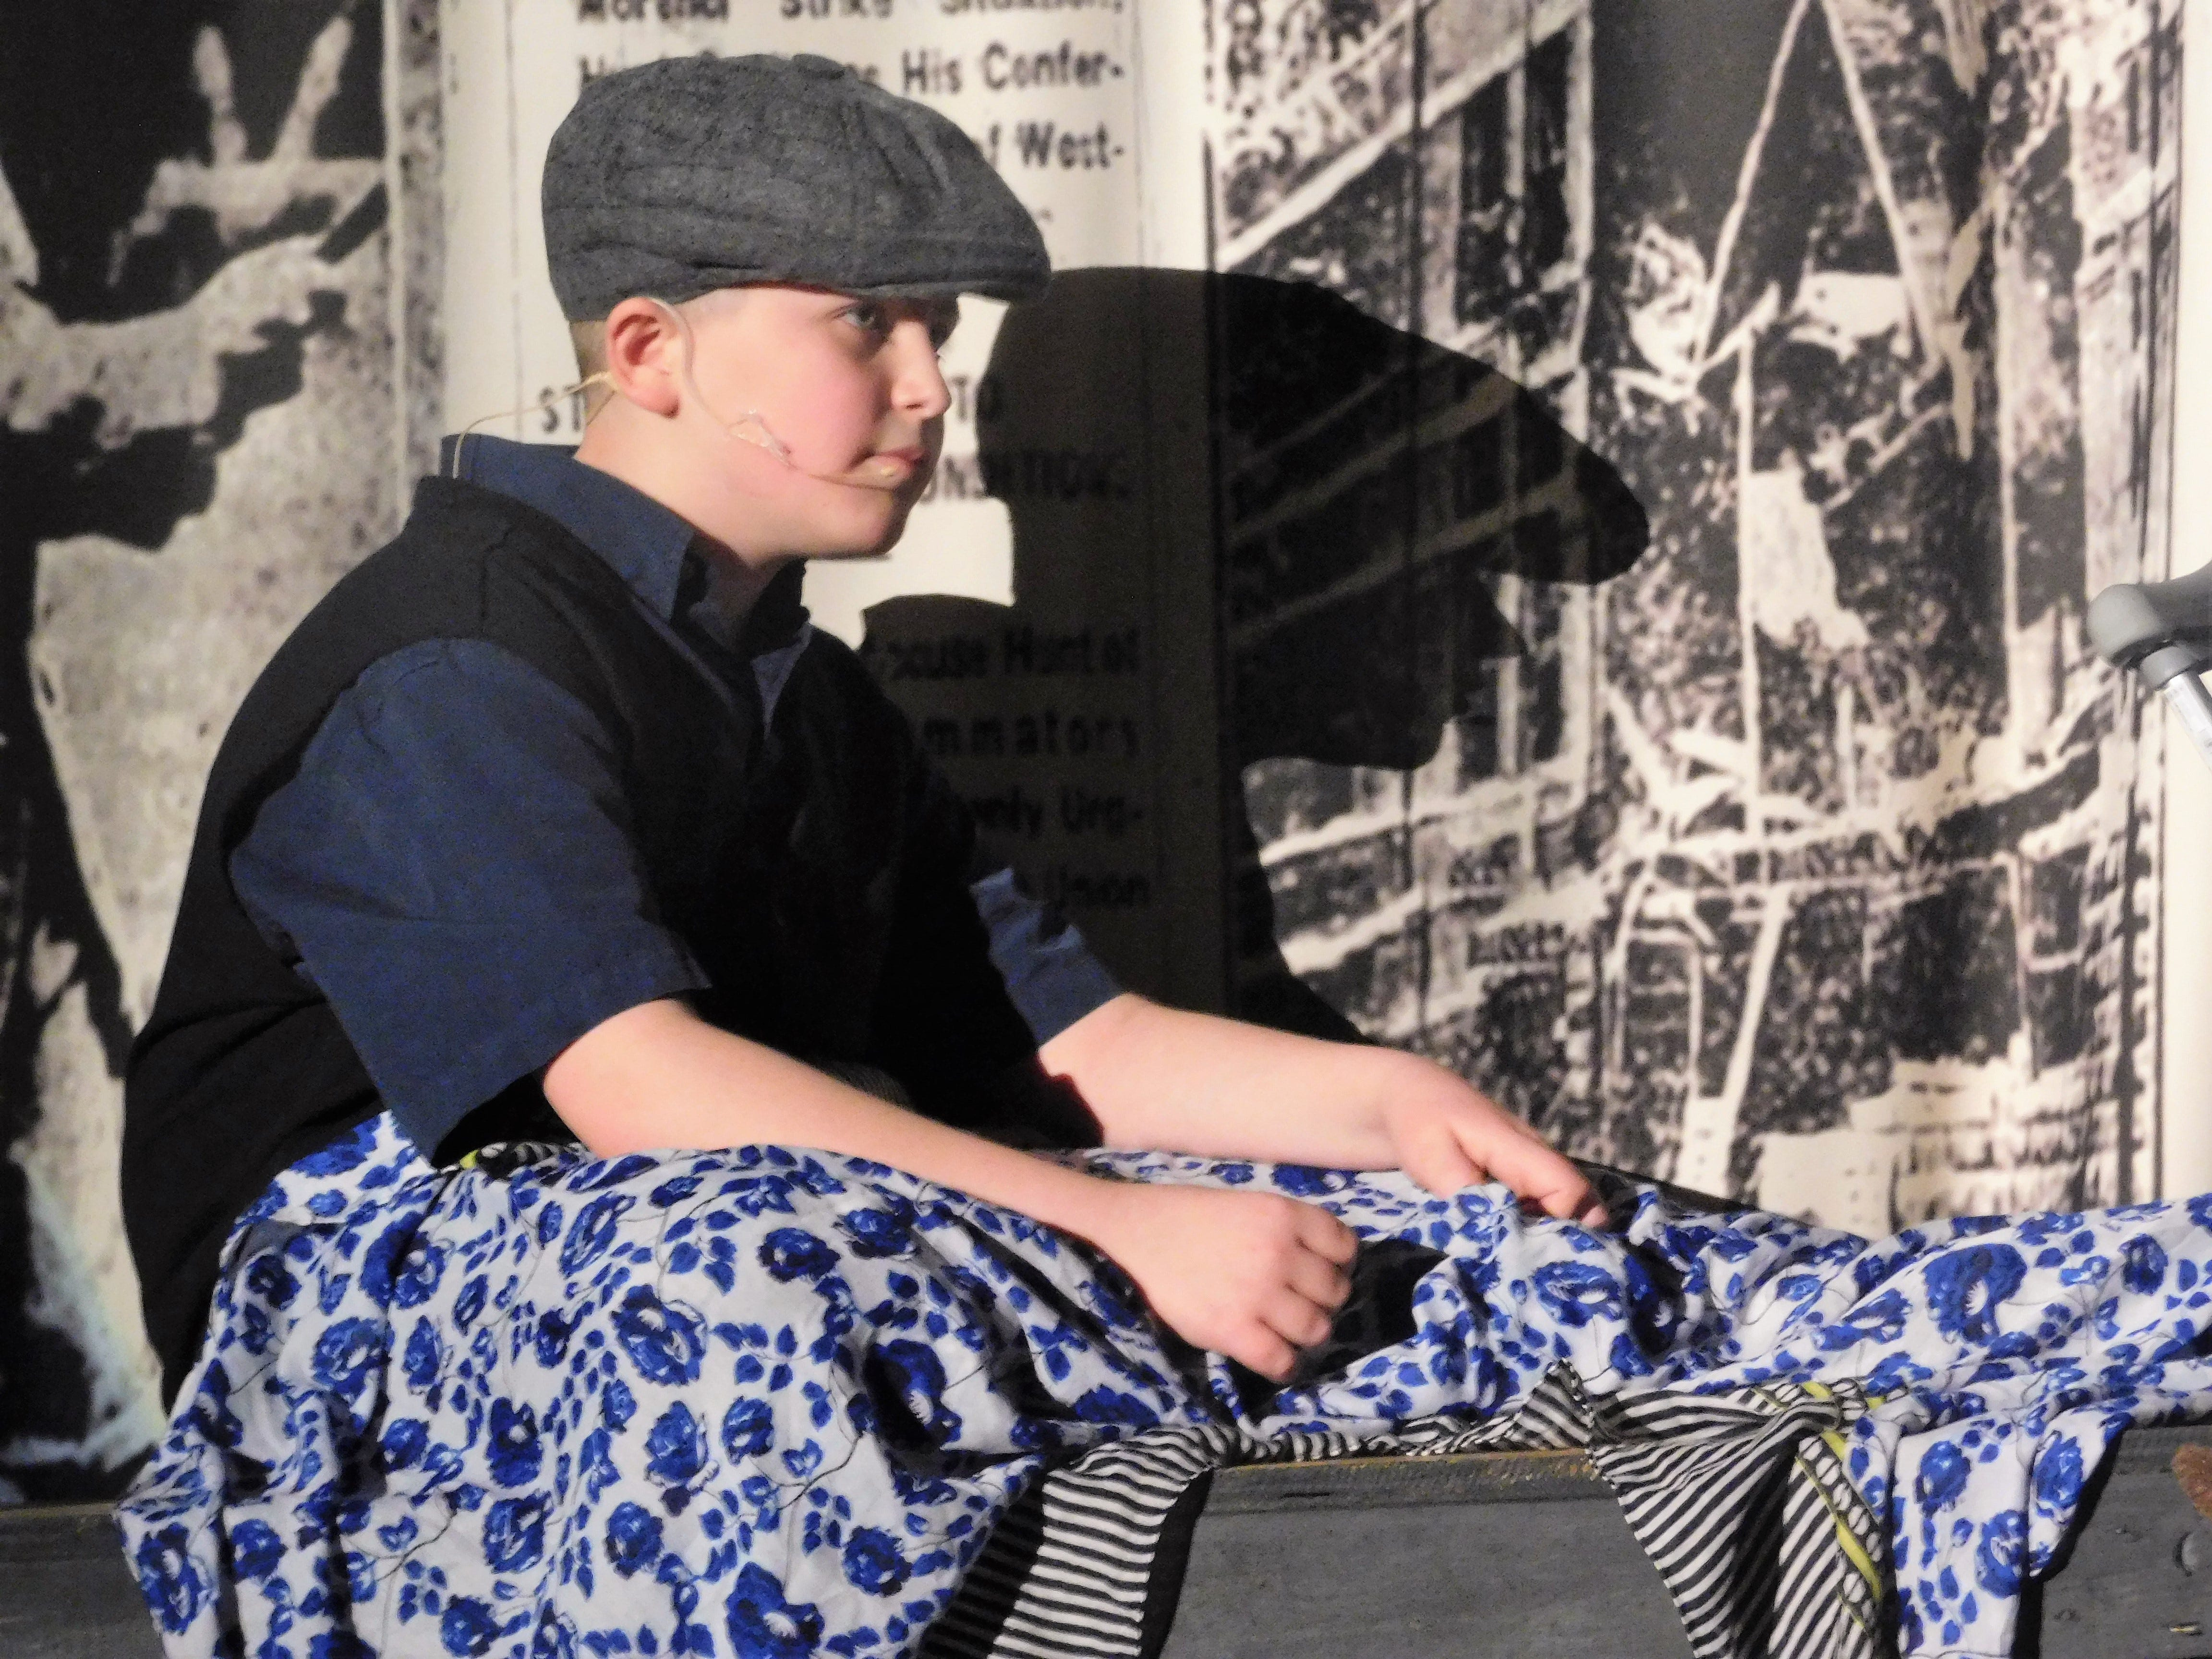 """Mason Truman rehearses a scene as Crutchie from Chambersburg Area Middle School North Drama Club's latest production, """"Newsies"""" on Wednesday, Jan. 23, 2019. Show times are 7:30 p.m. Feb. 1 and 2 in the CAMS North auditorium. For tickets, $8 plus fees, go to showtix4u.com."""